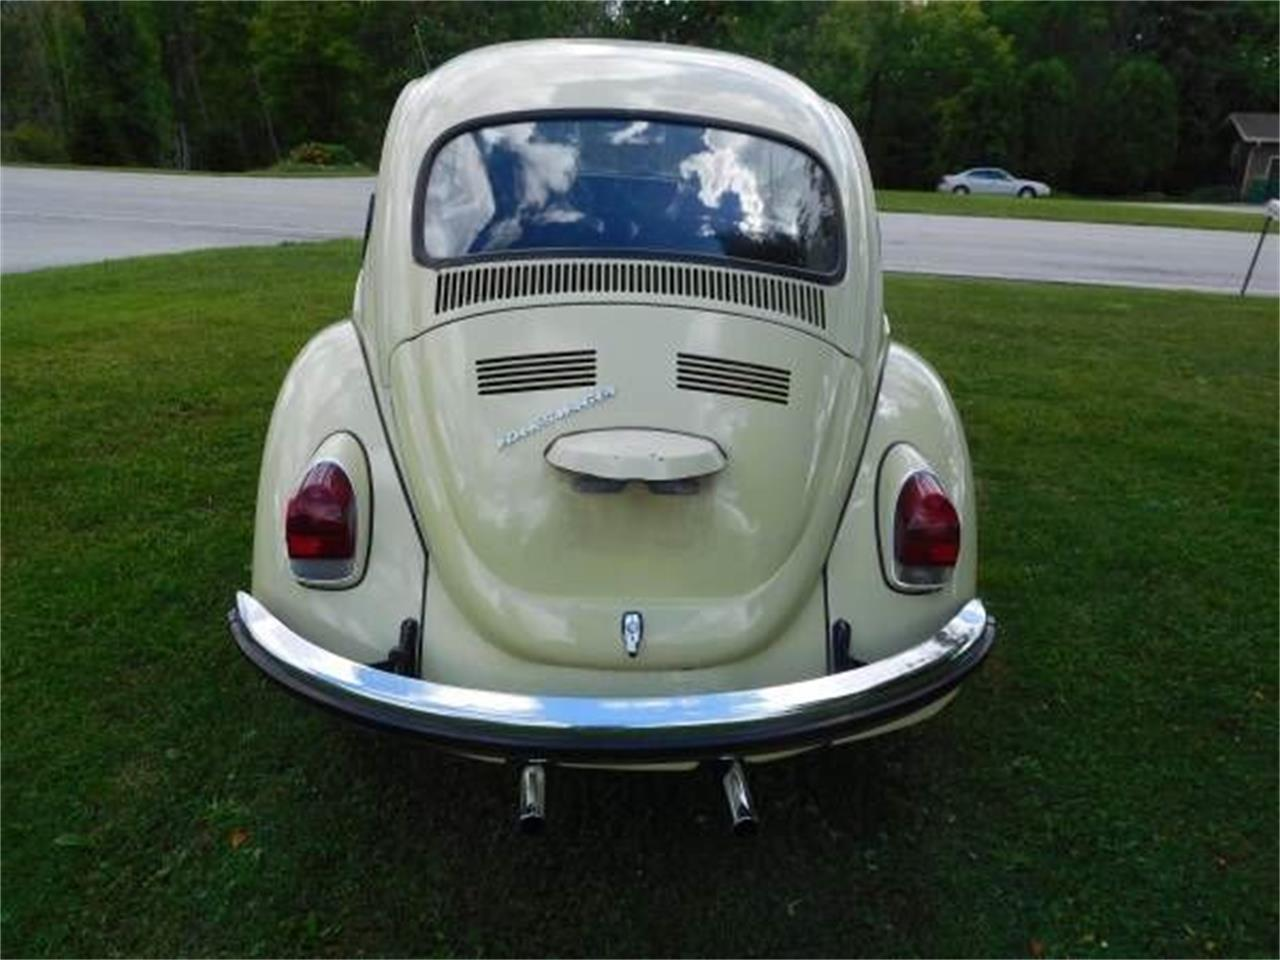 1971 Volkswagen Super Beetle for sale in Cadillac, MI – photo 2